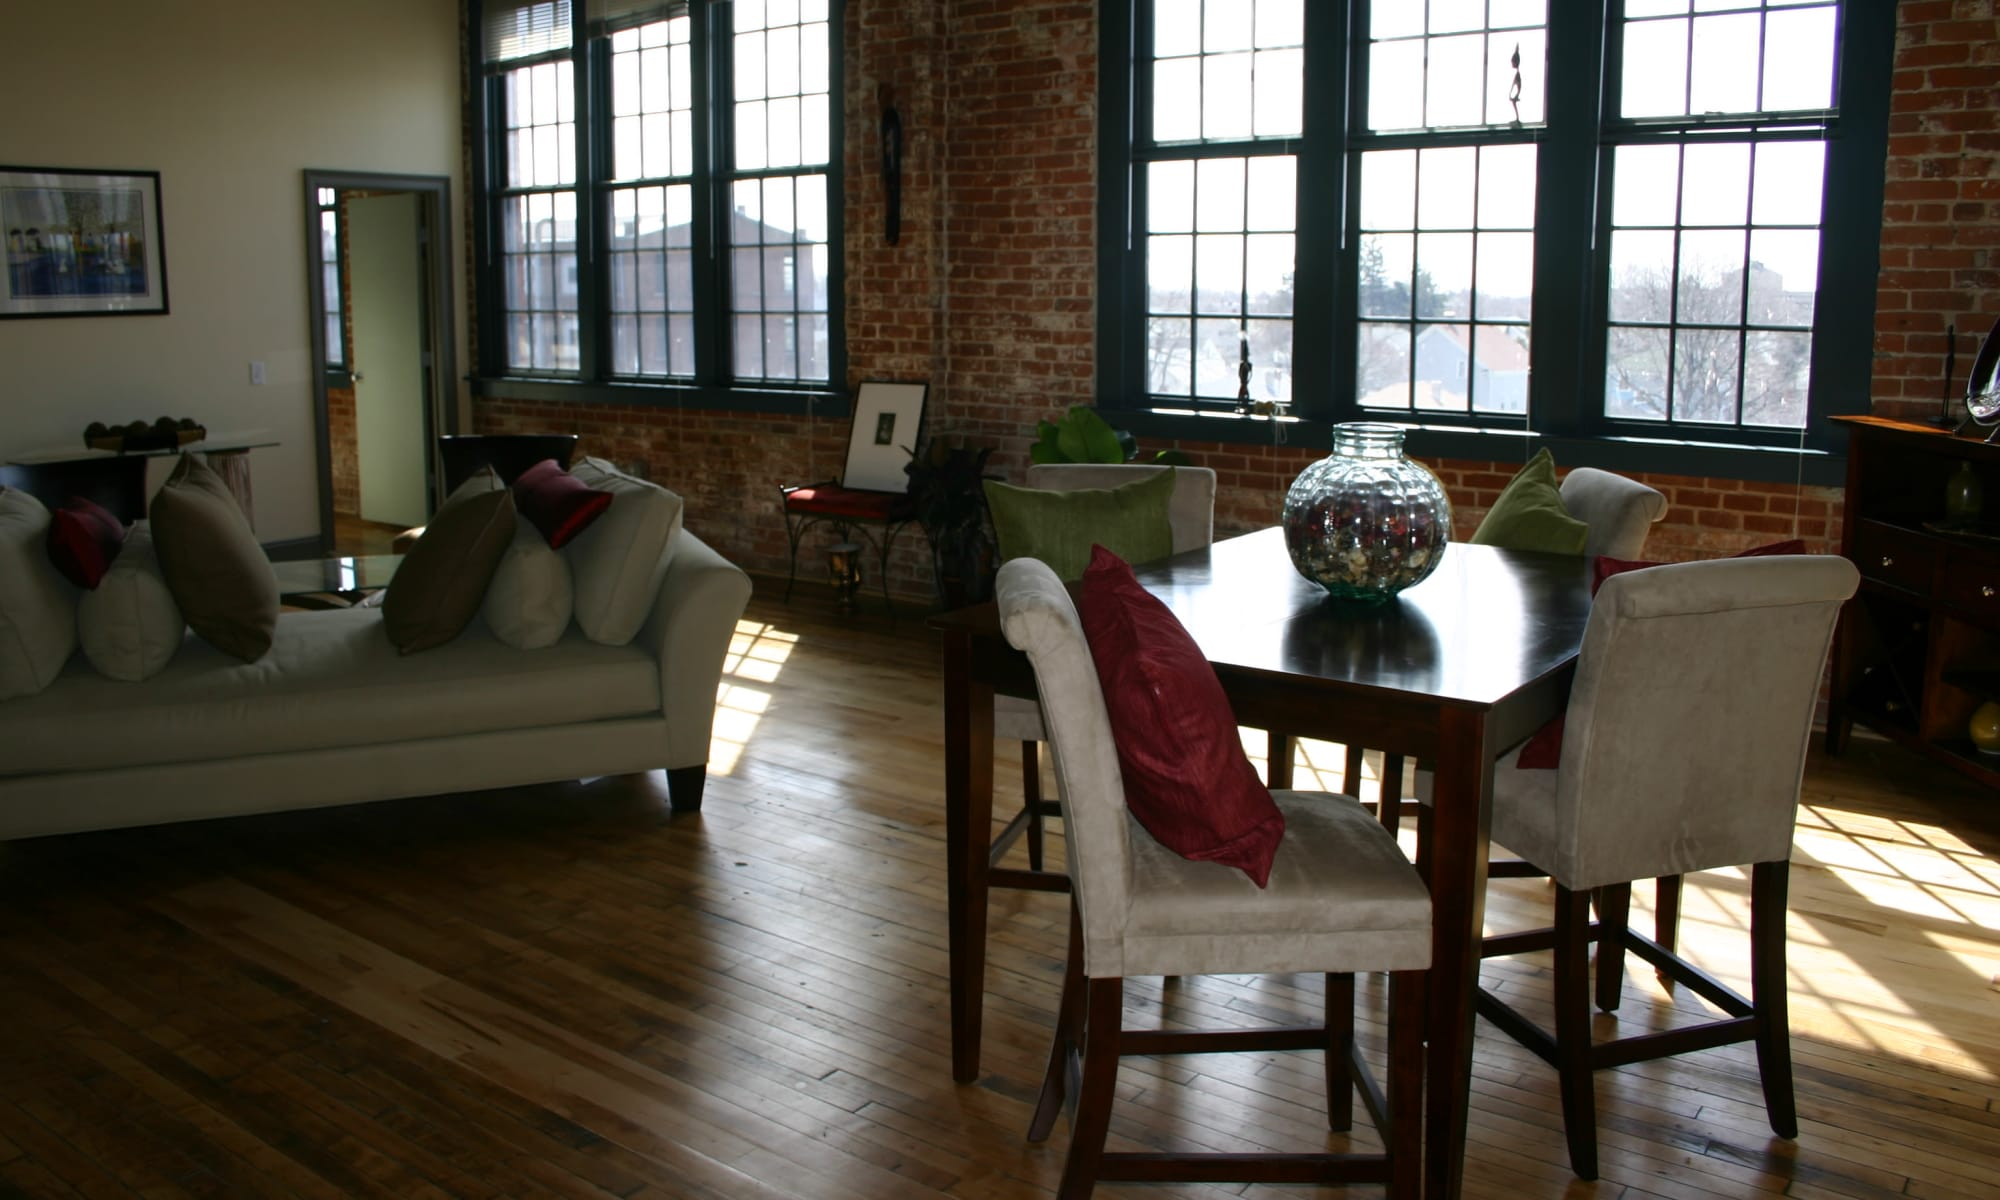 Apartments at Westfield Lofts in Providence, Rhode Island